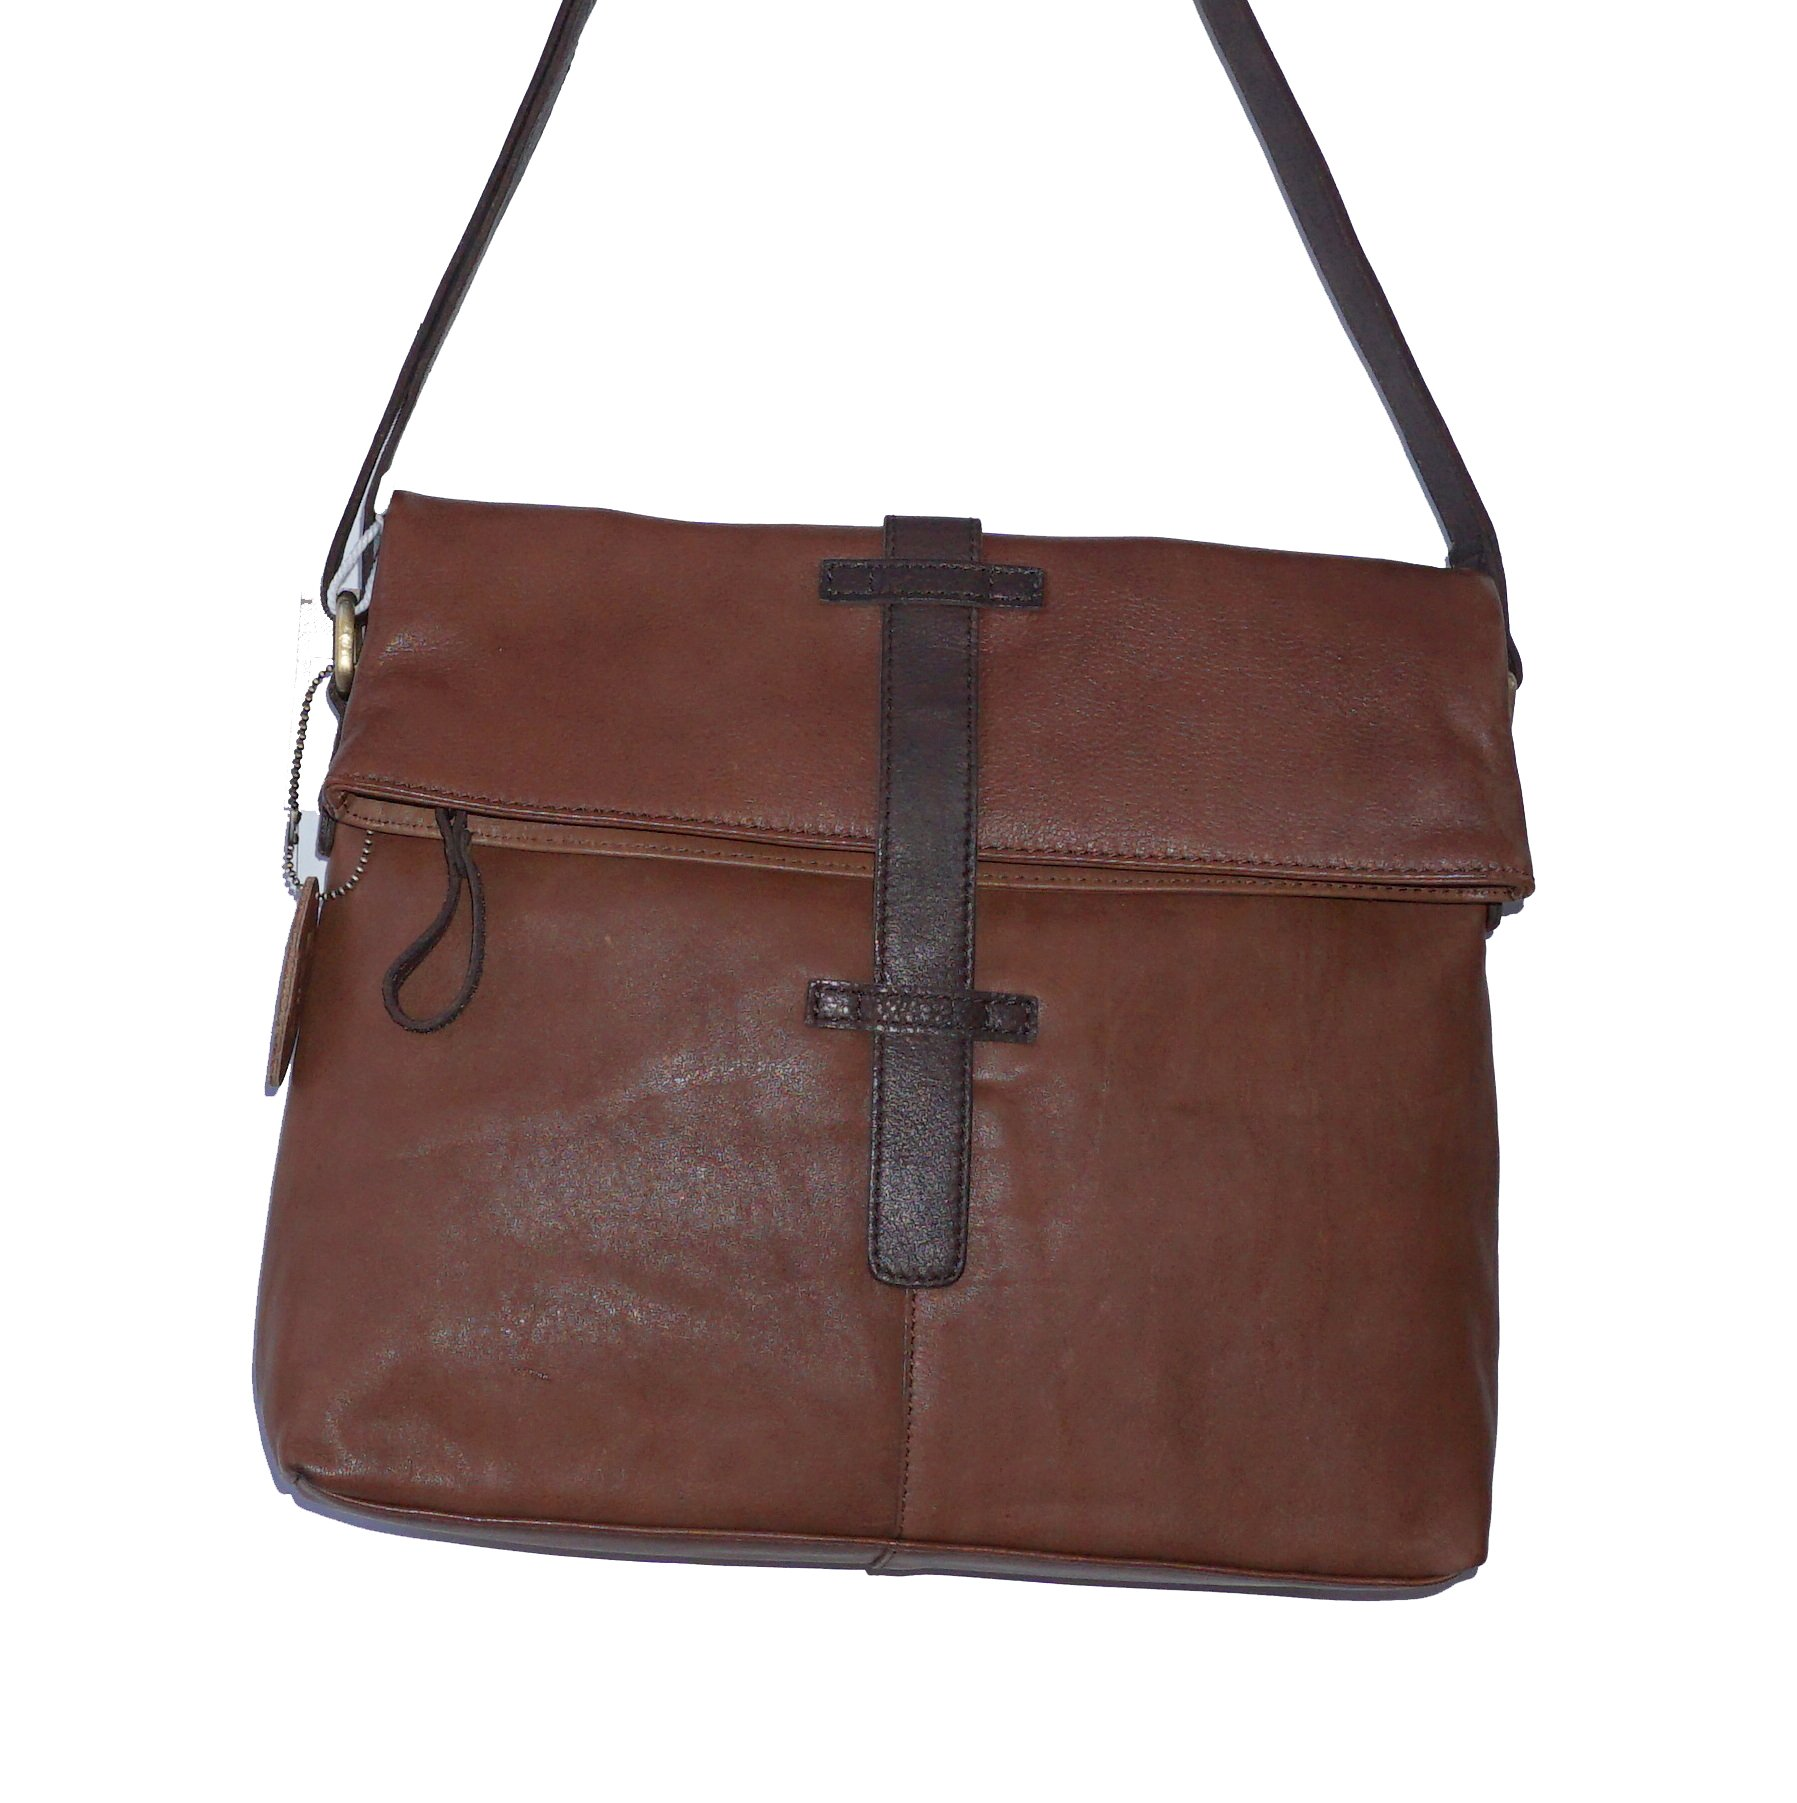 Bolla Forest Winterfold Brown Satchel